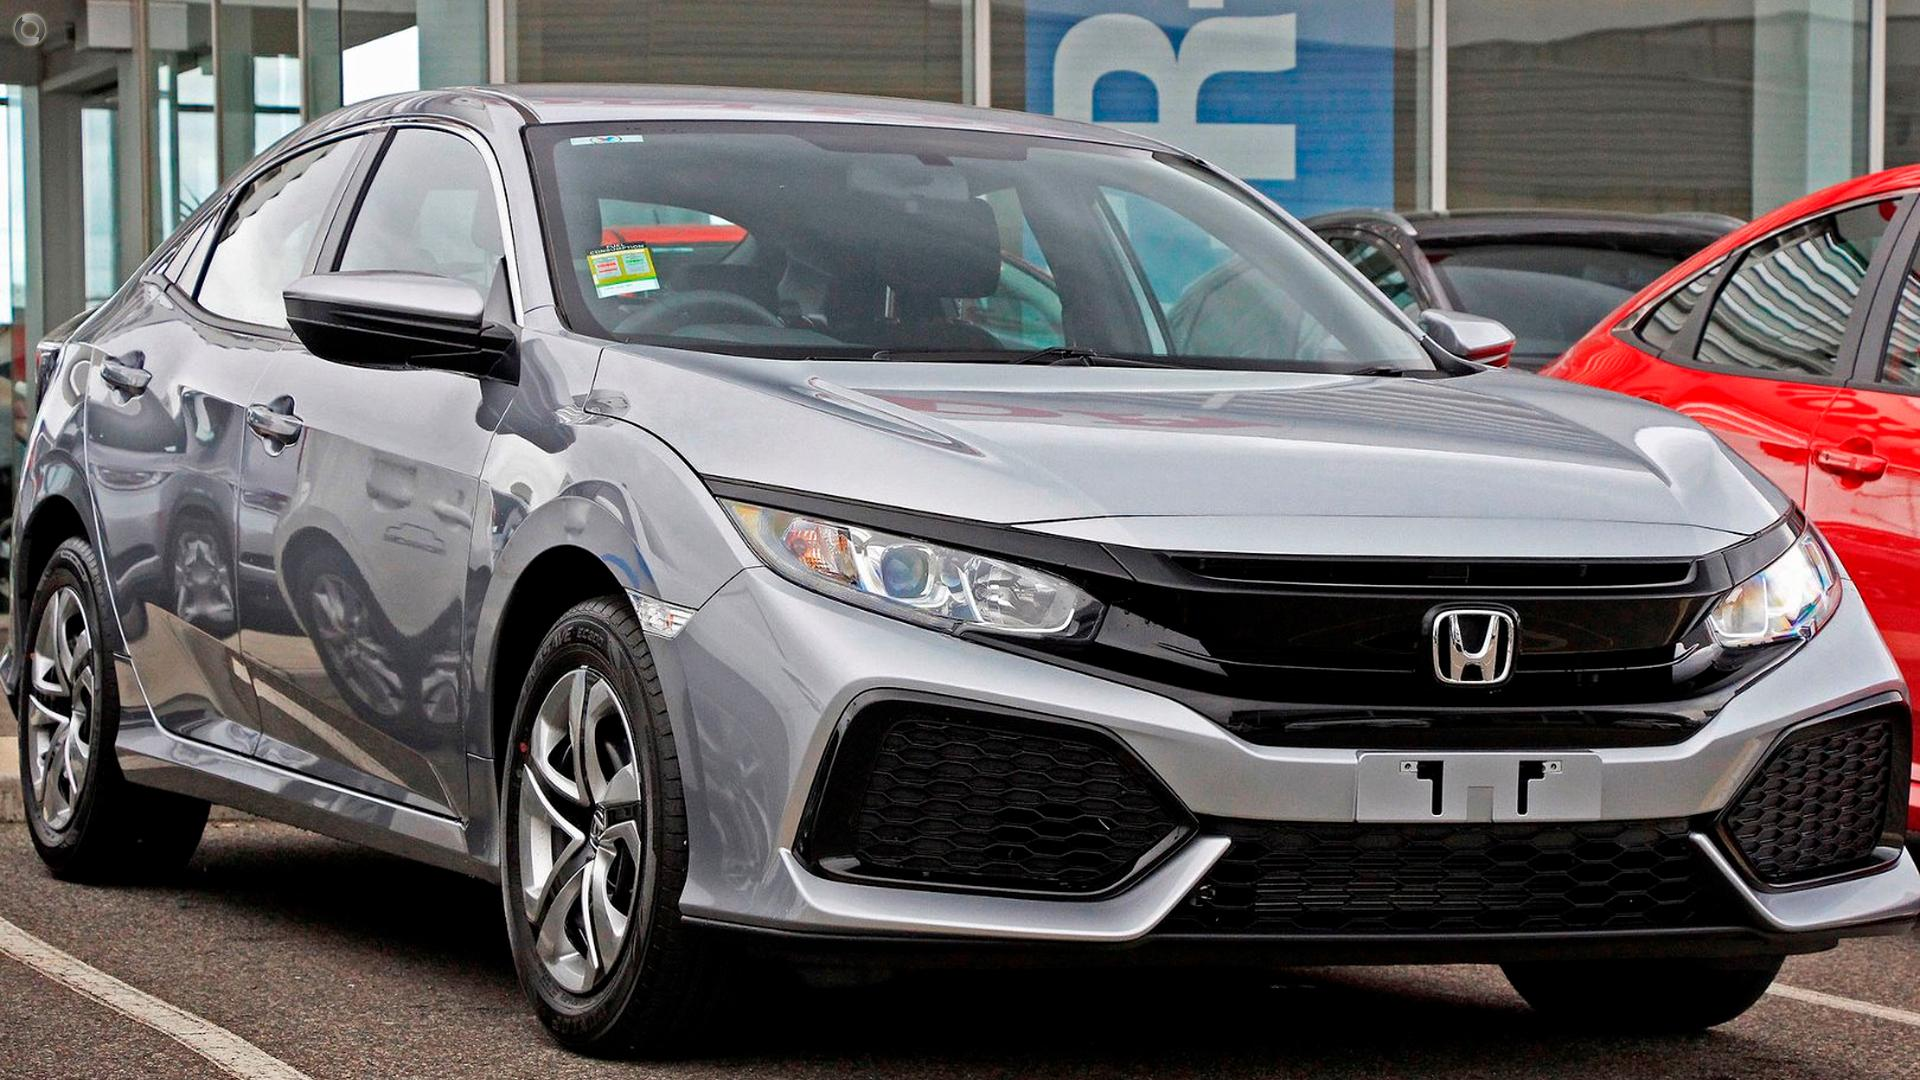 2018 Honda Civic VTi 10th Gen